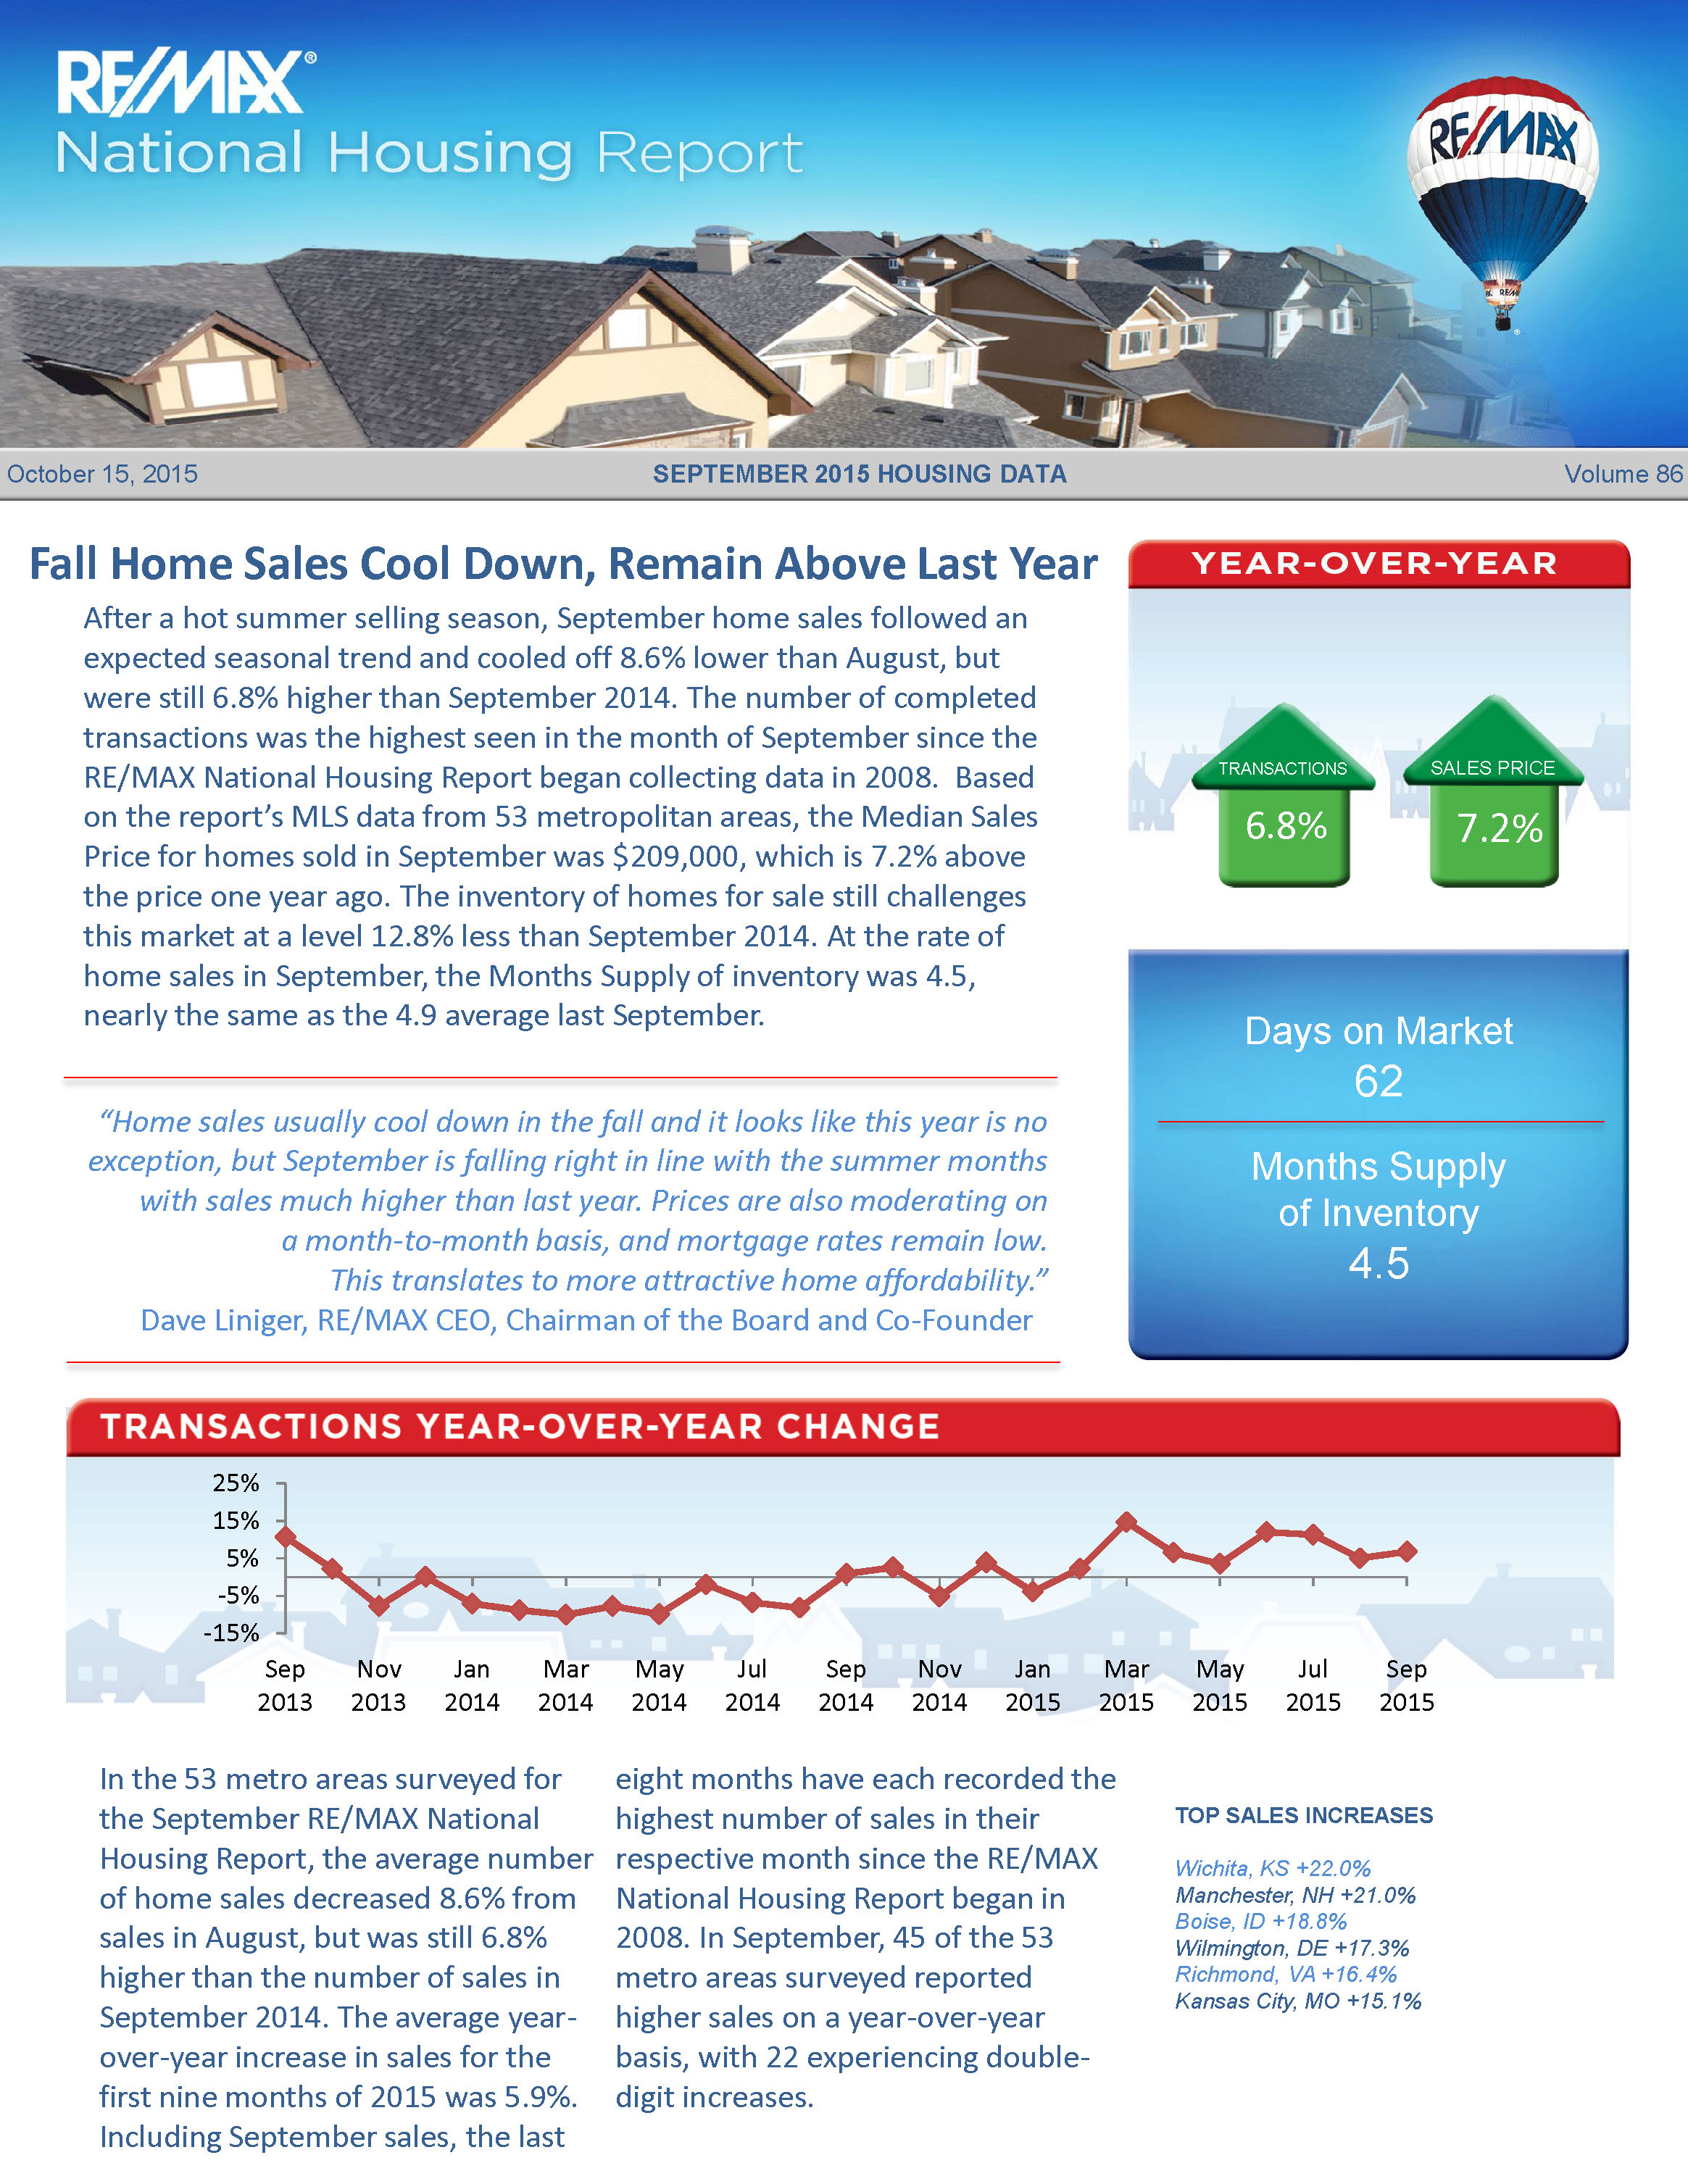 Re/Max National Housing Report